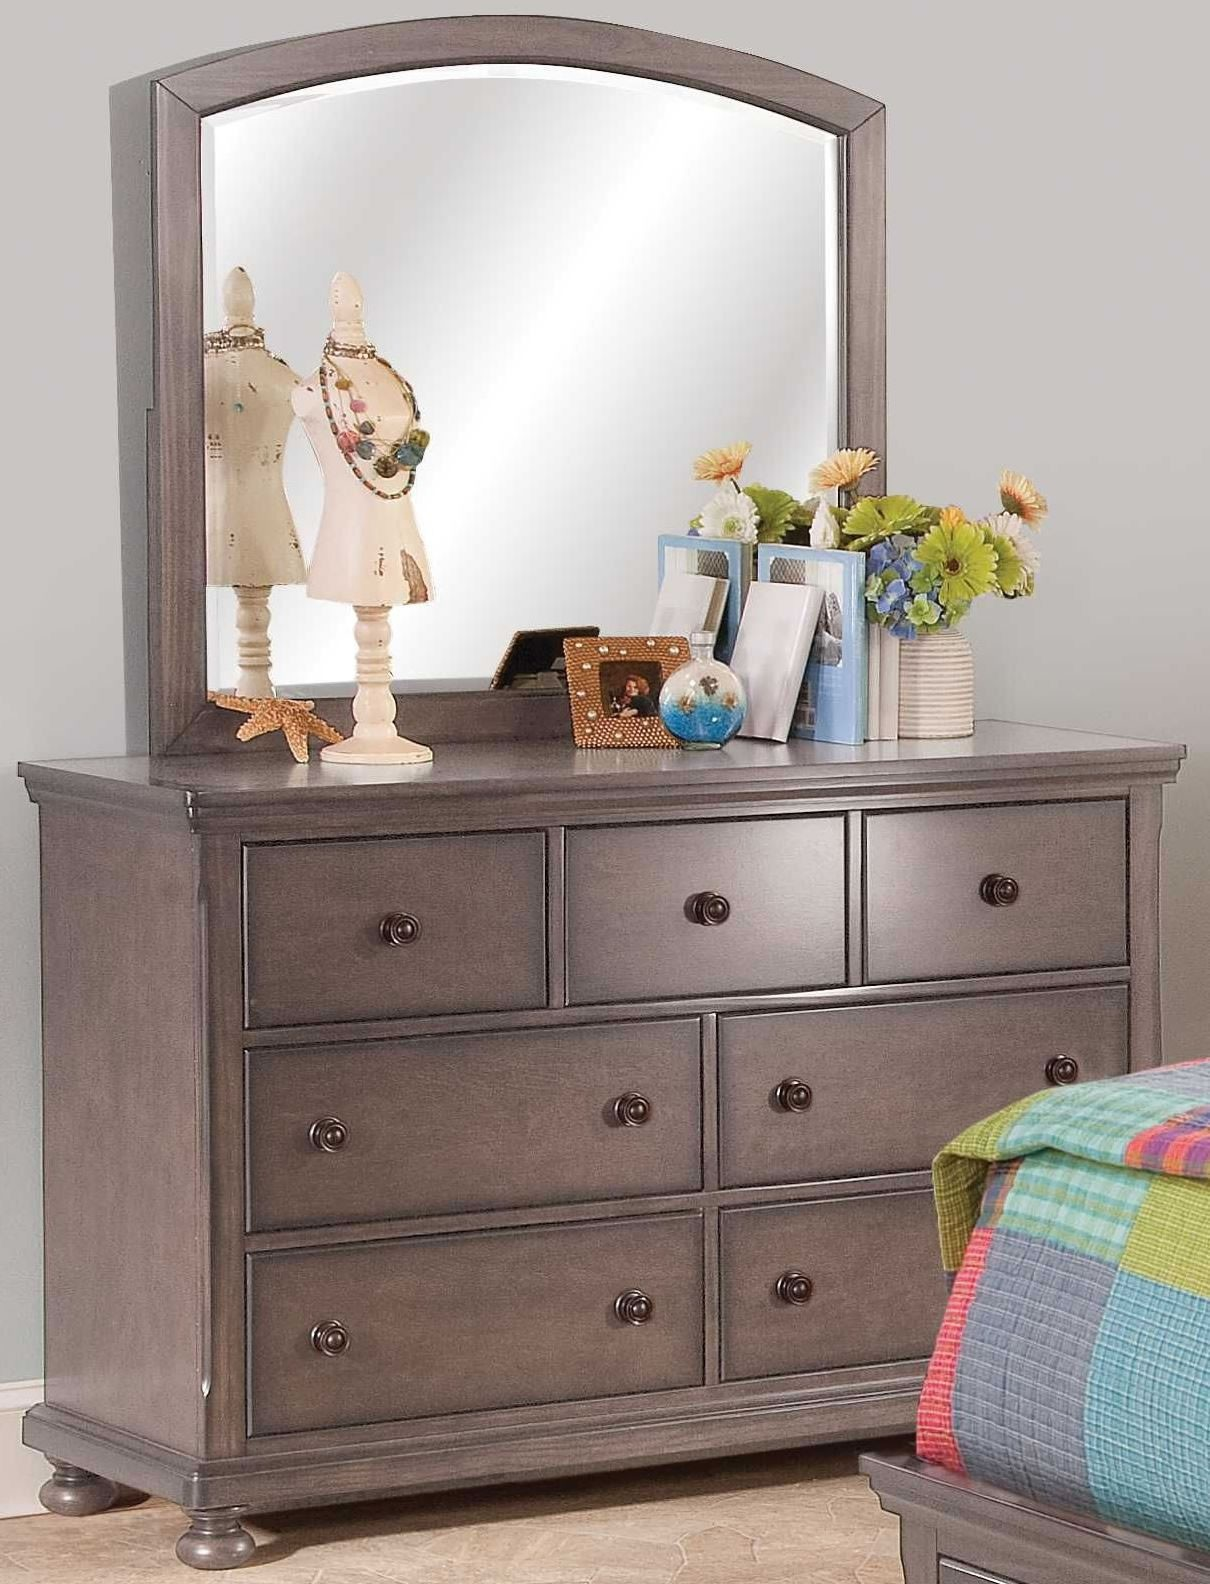 Allegra youth pewter youth sleigh storage bedroom set - Youth bedroom furniture with storage ...